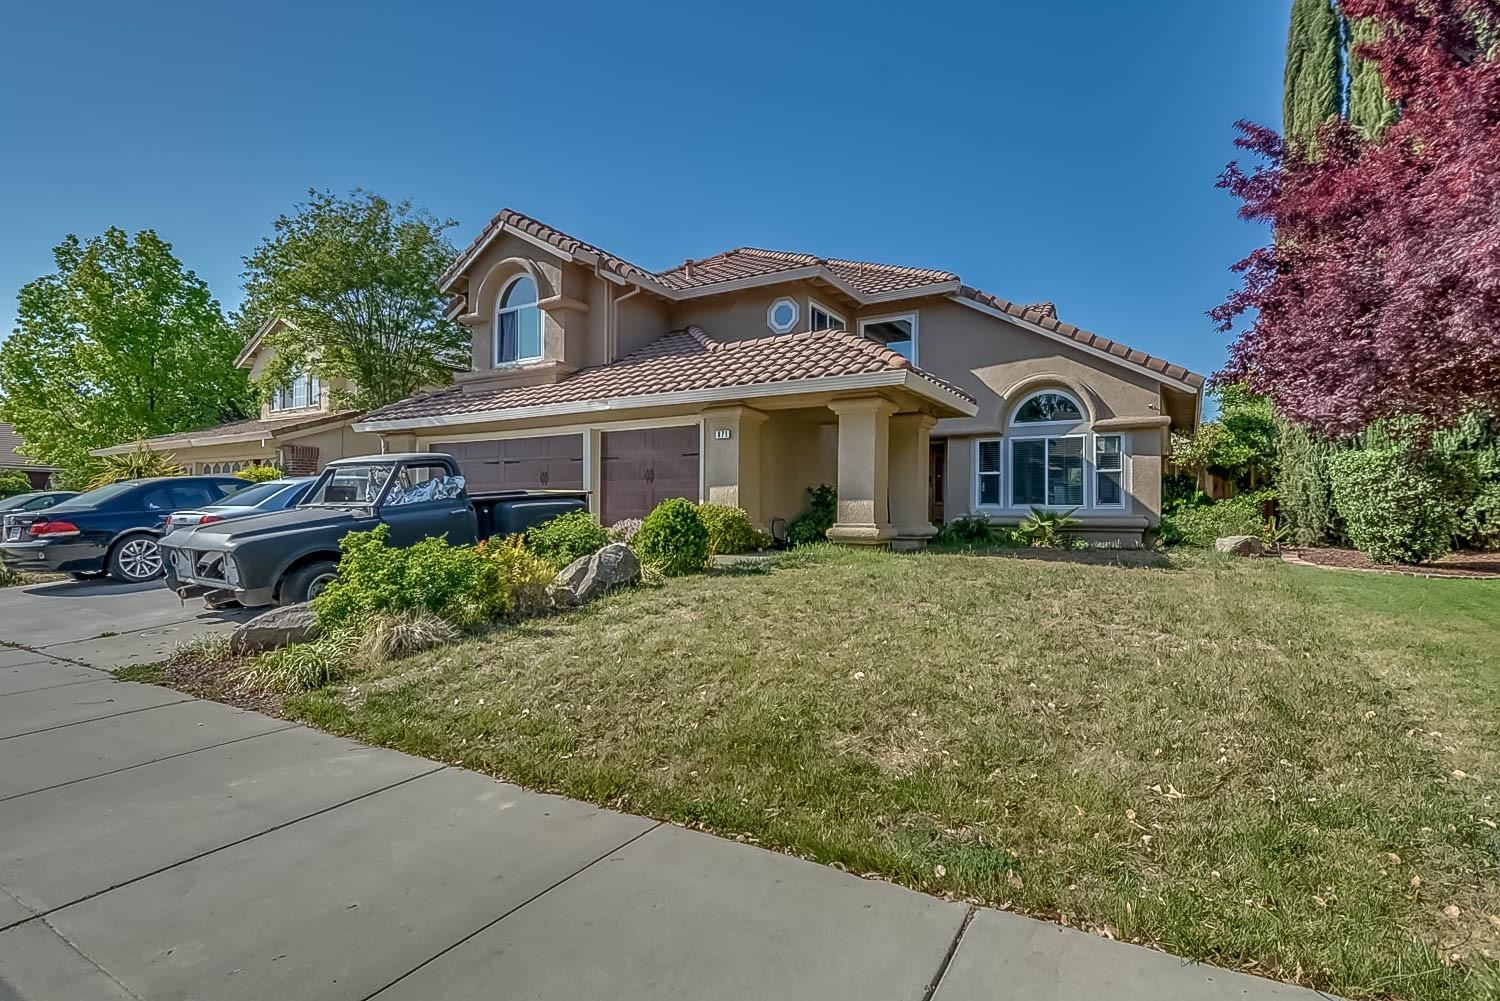 Photo of 871 Allegheny Court, Tracy, CA 95376 (MLS # 221037464)